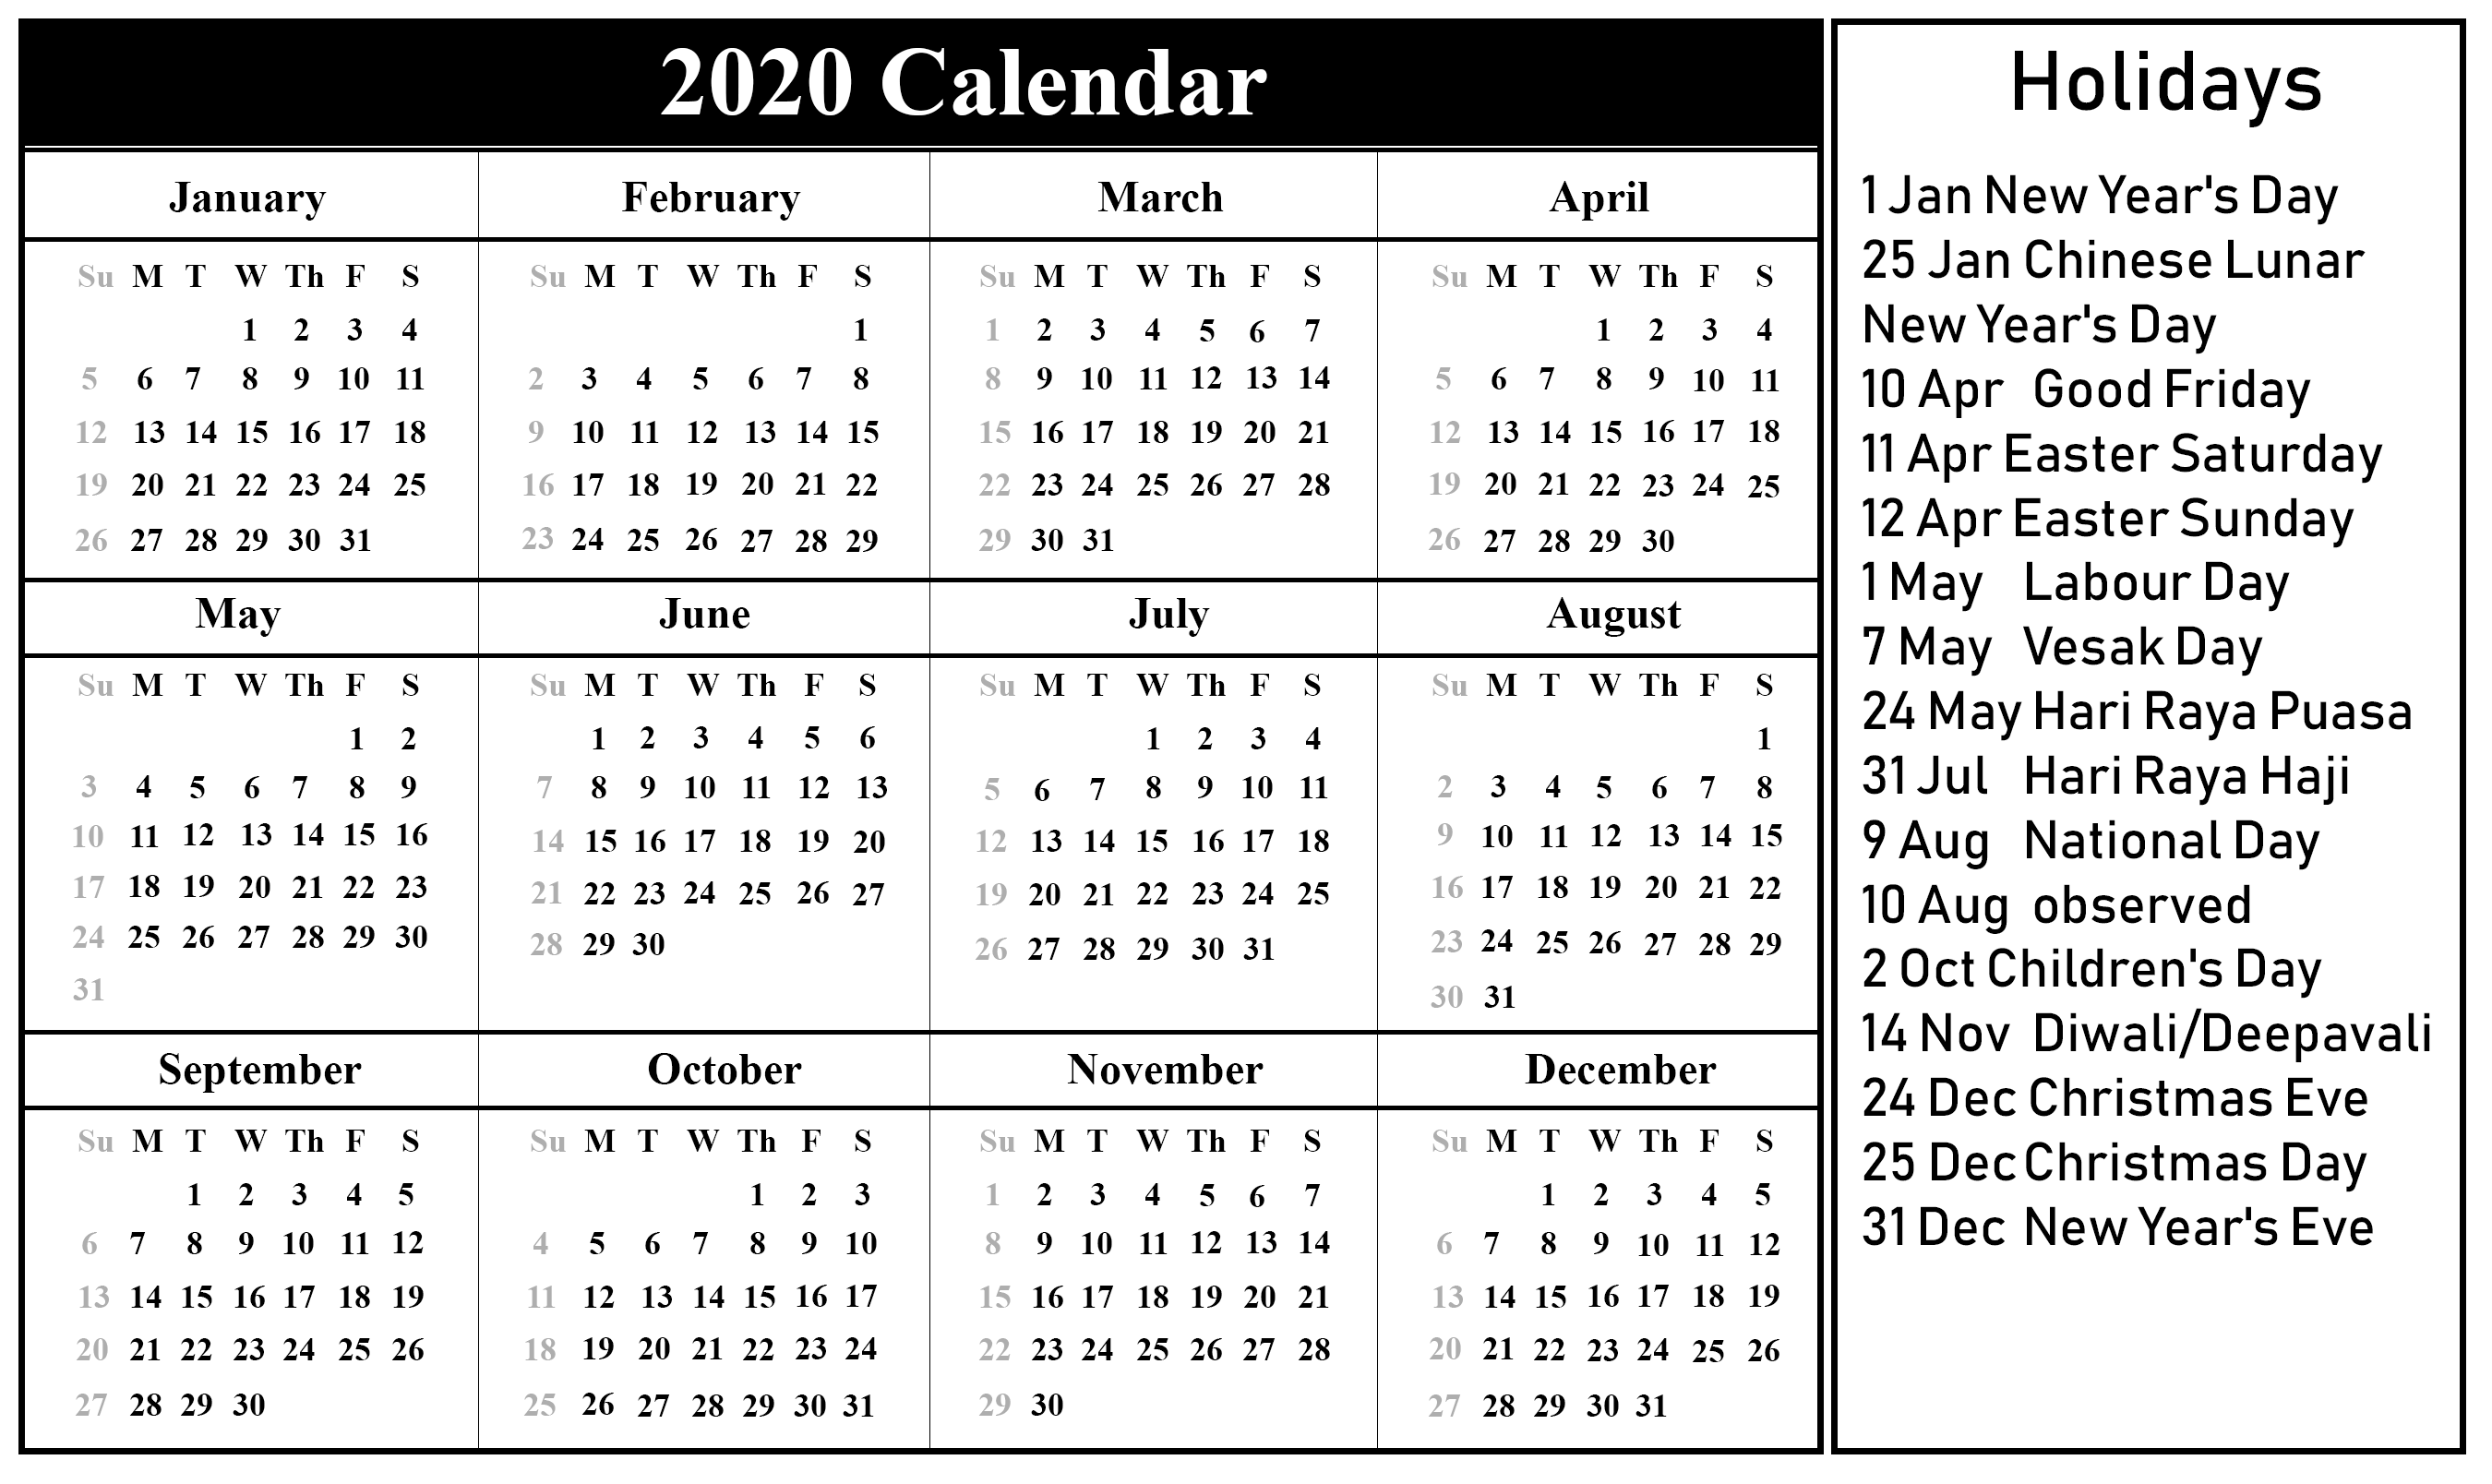 Free Printable Christmas Calendar 2020 Printable 2020 Calendar with Holidays | Holiday calendar printable